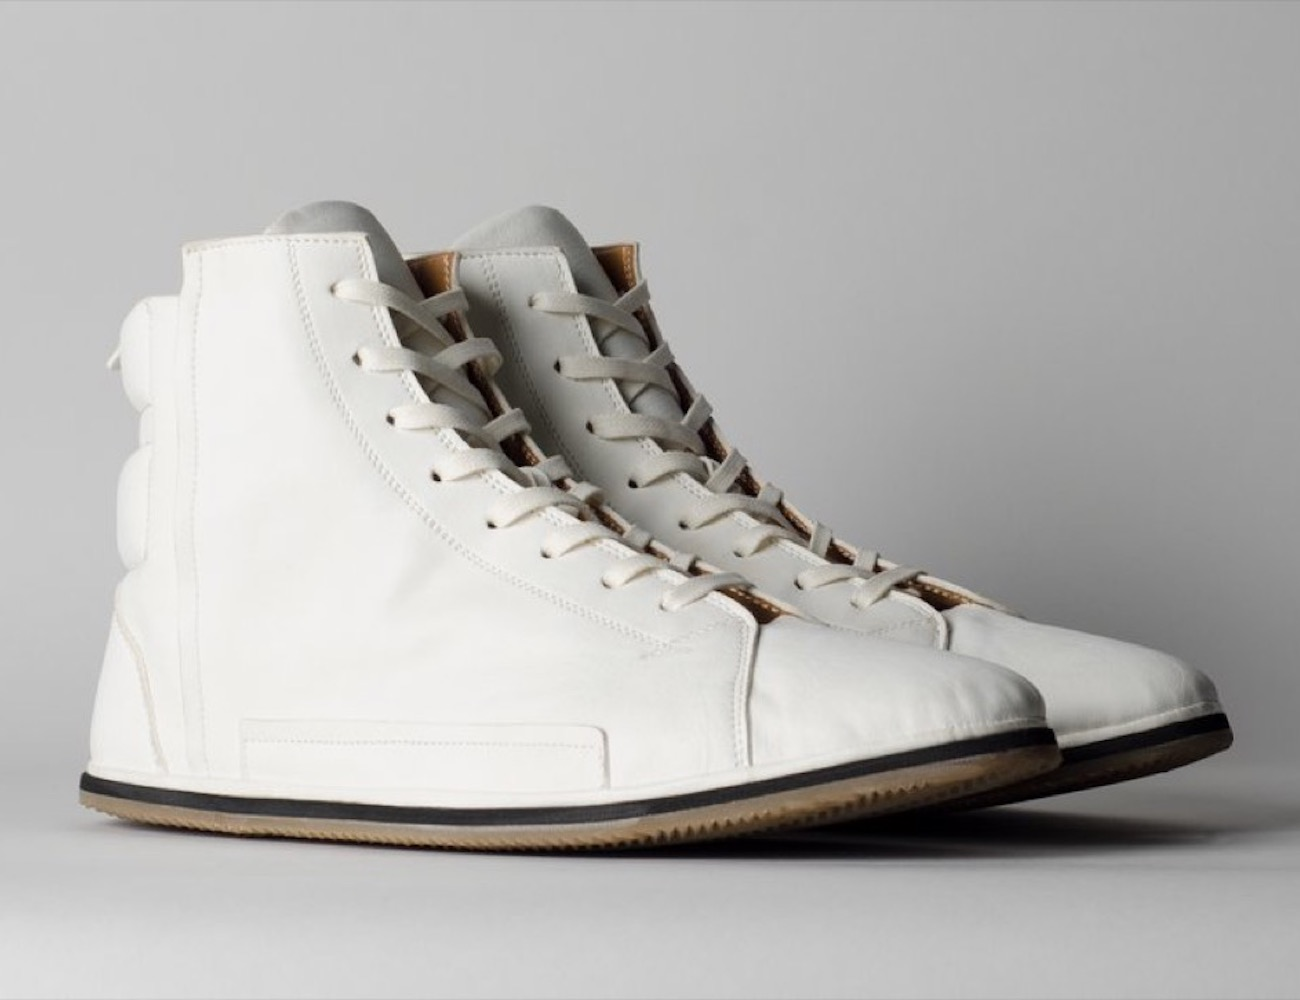 Hard Graft S2 High Top Fashion Sneakers